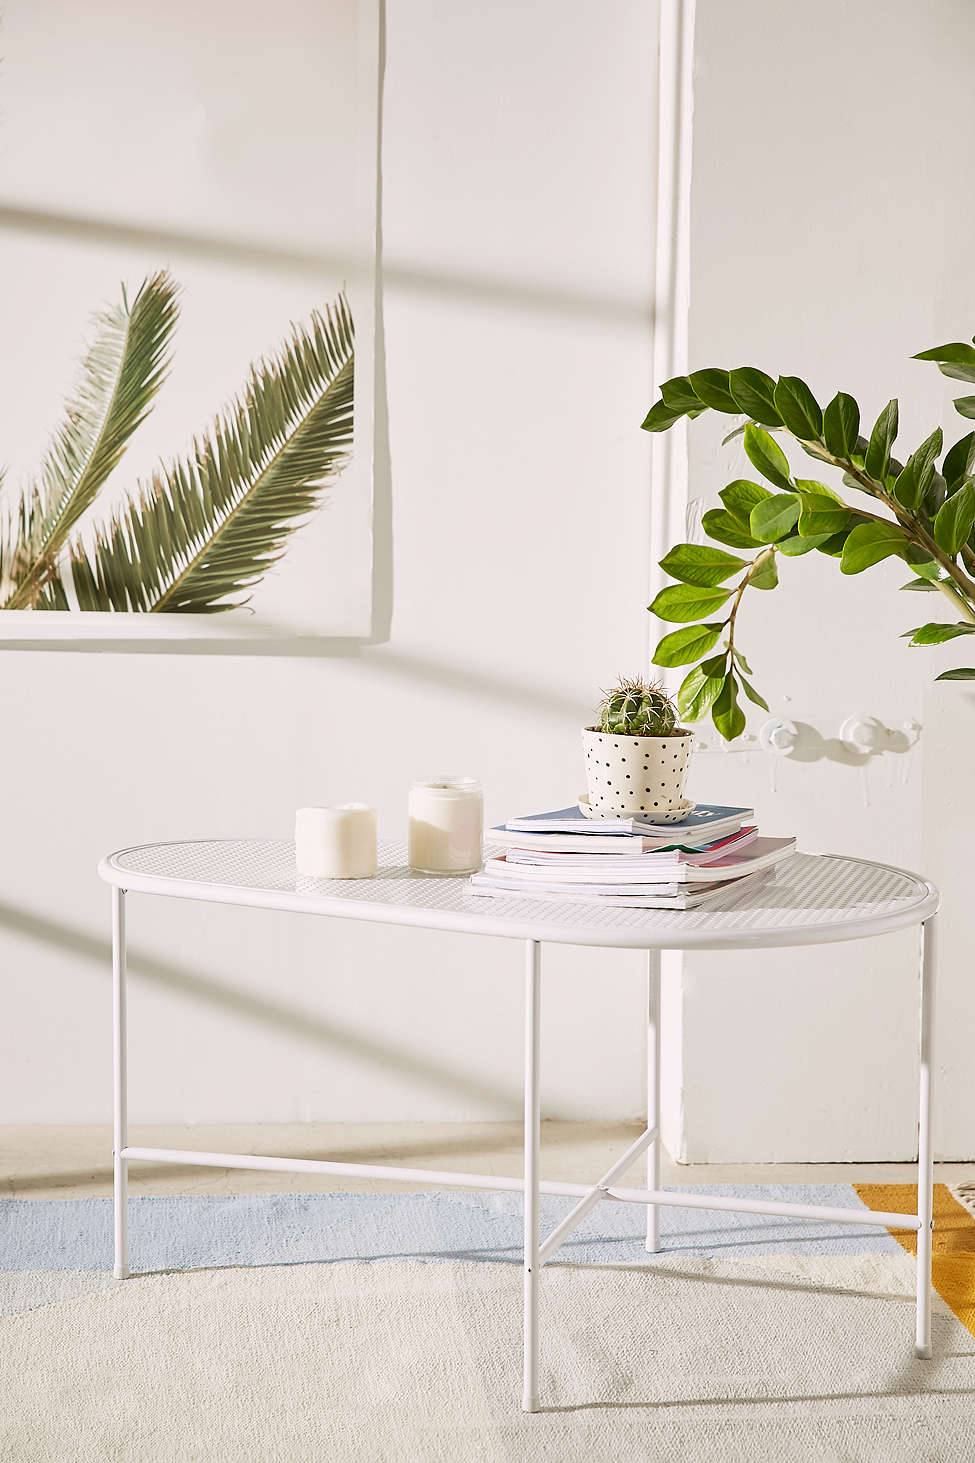 Metal coffee table from Urban Outfitters